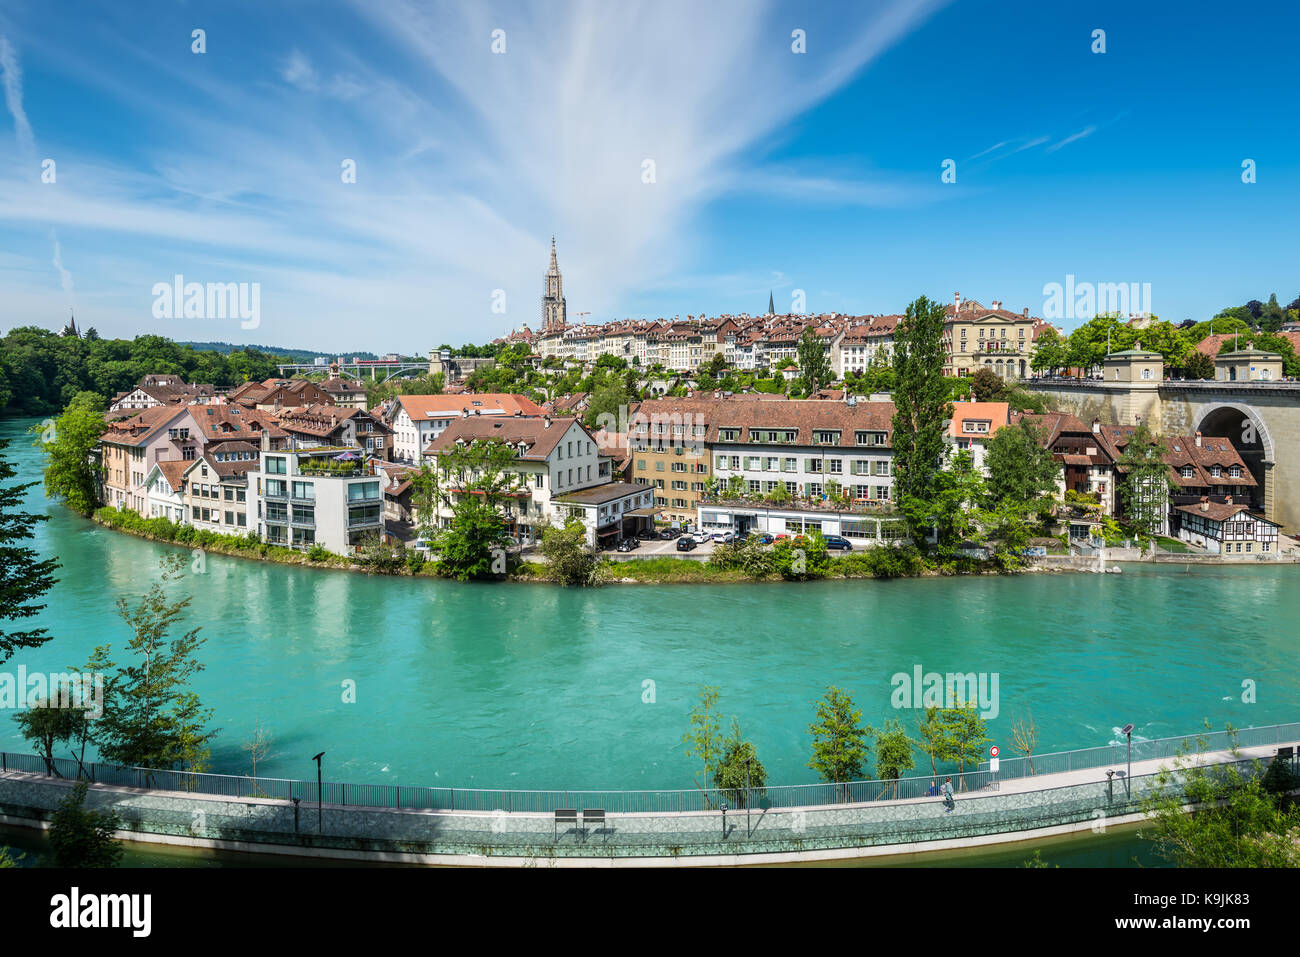 Bern, Switzerland - May 26, 2016: View of Bern old town over the Aare river in Switzerland. Stock Photo